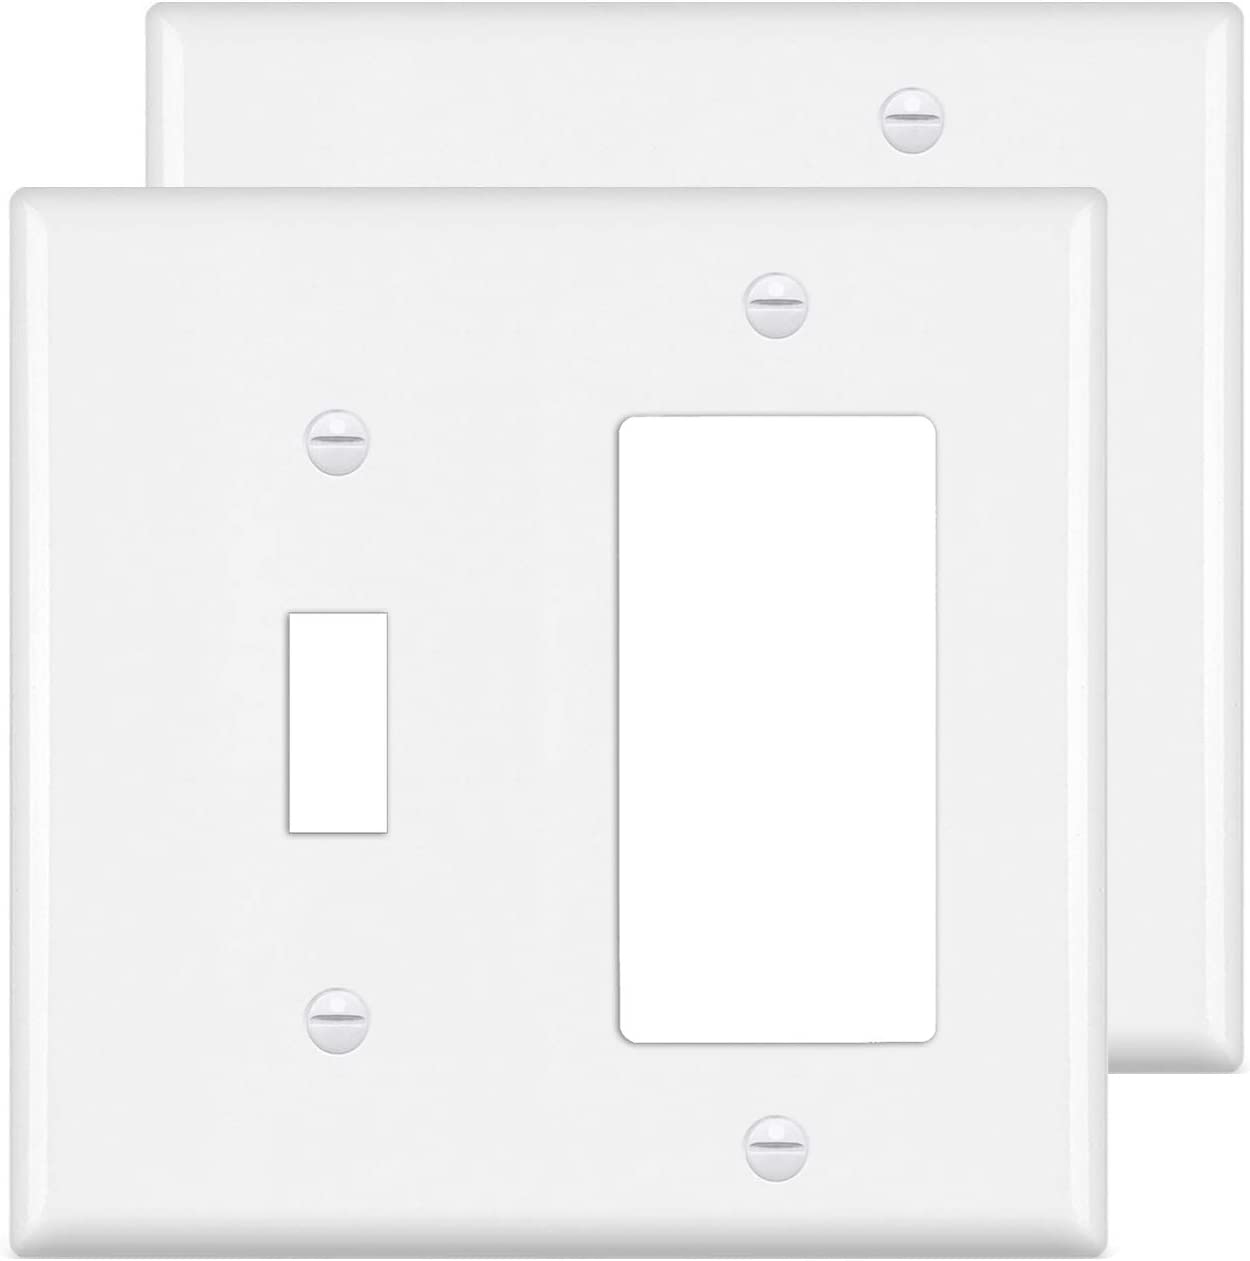 [2 Pack] BESTTEN 2-Gang Combination Wall Plate, 1-Decor/1-Toggle Outlet and Switch Cover, Standard Size, UL Listed, White